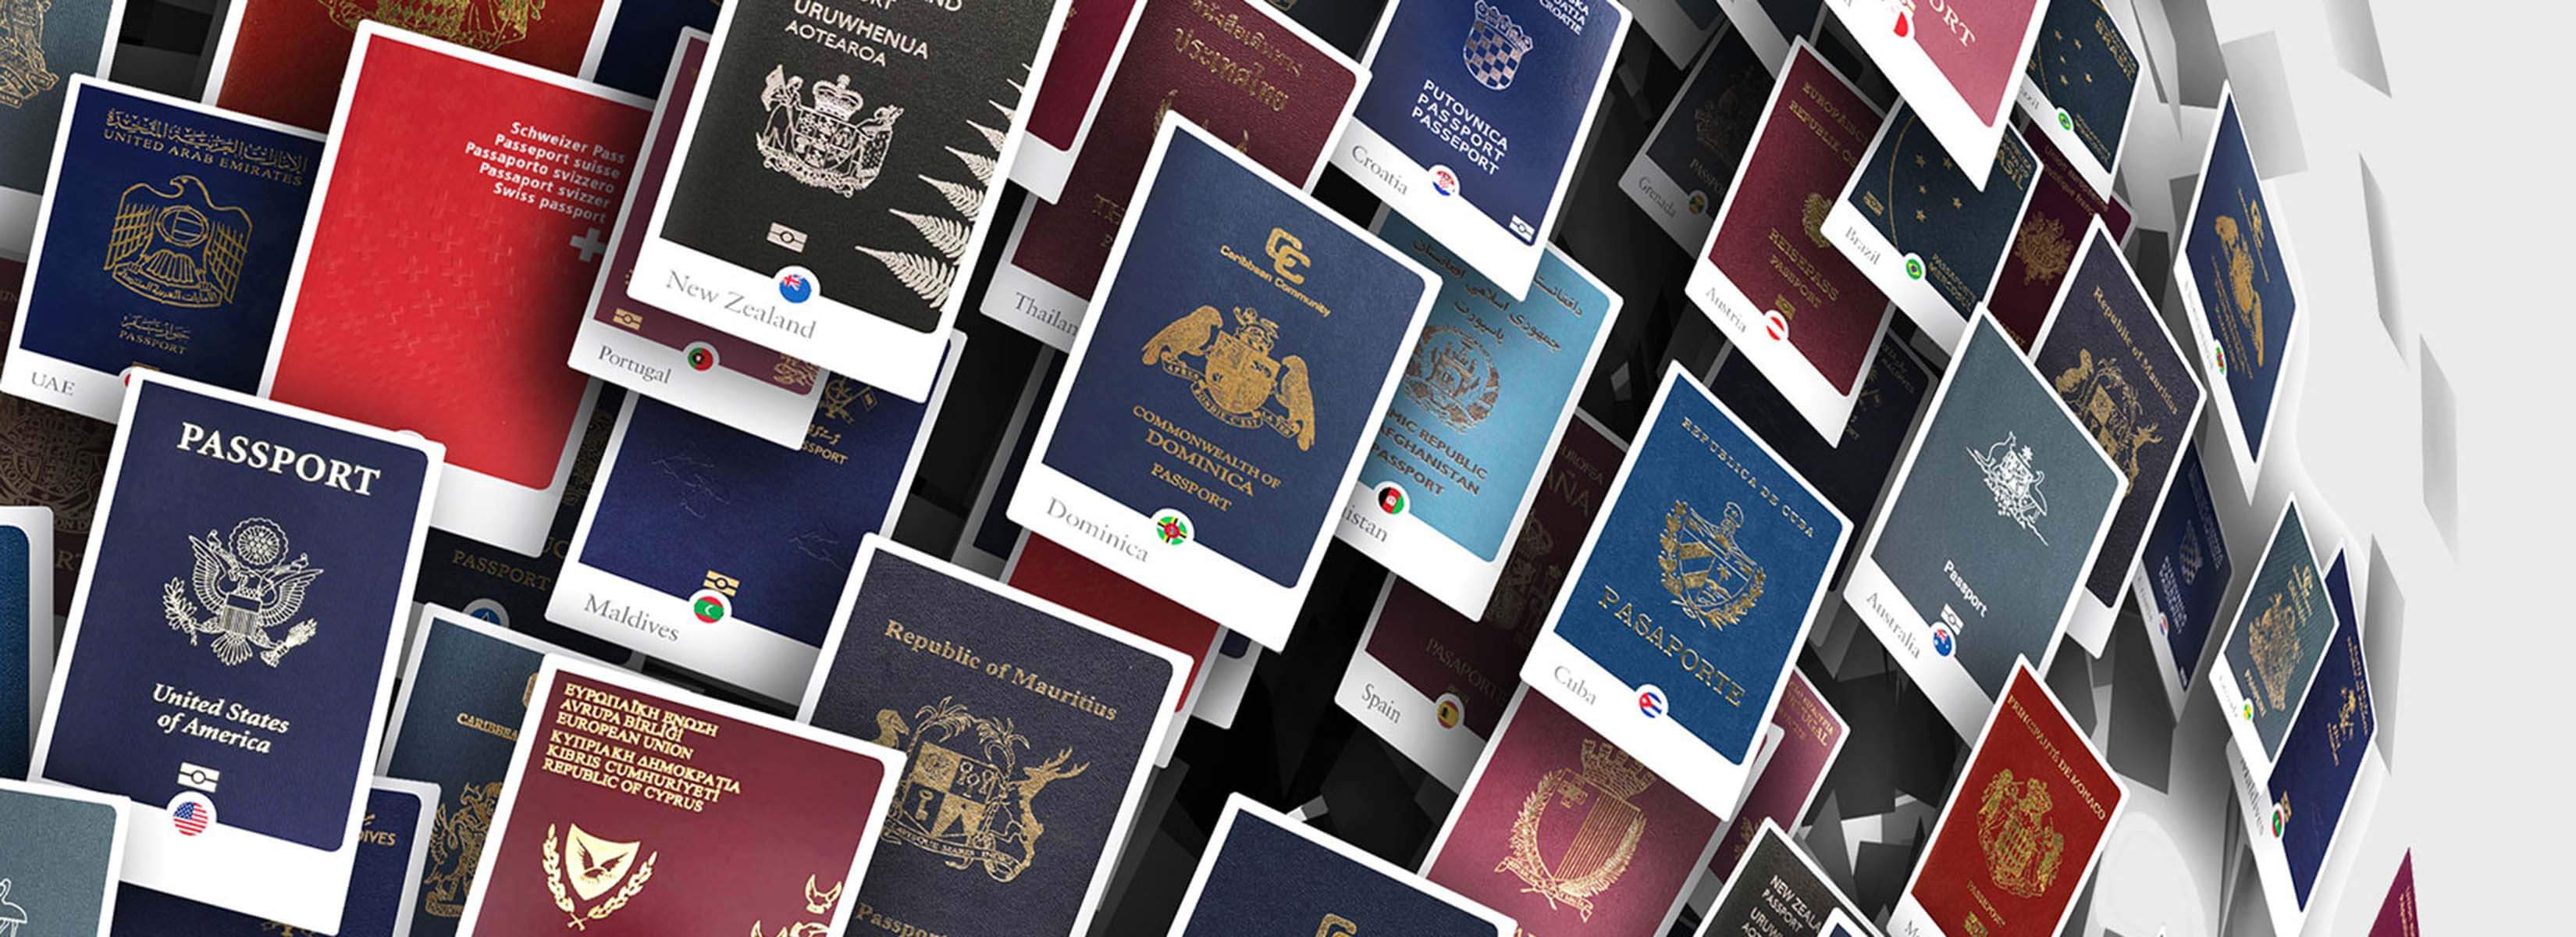 The Henley Passport Index